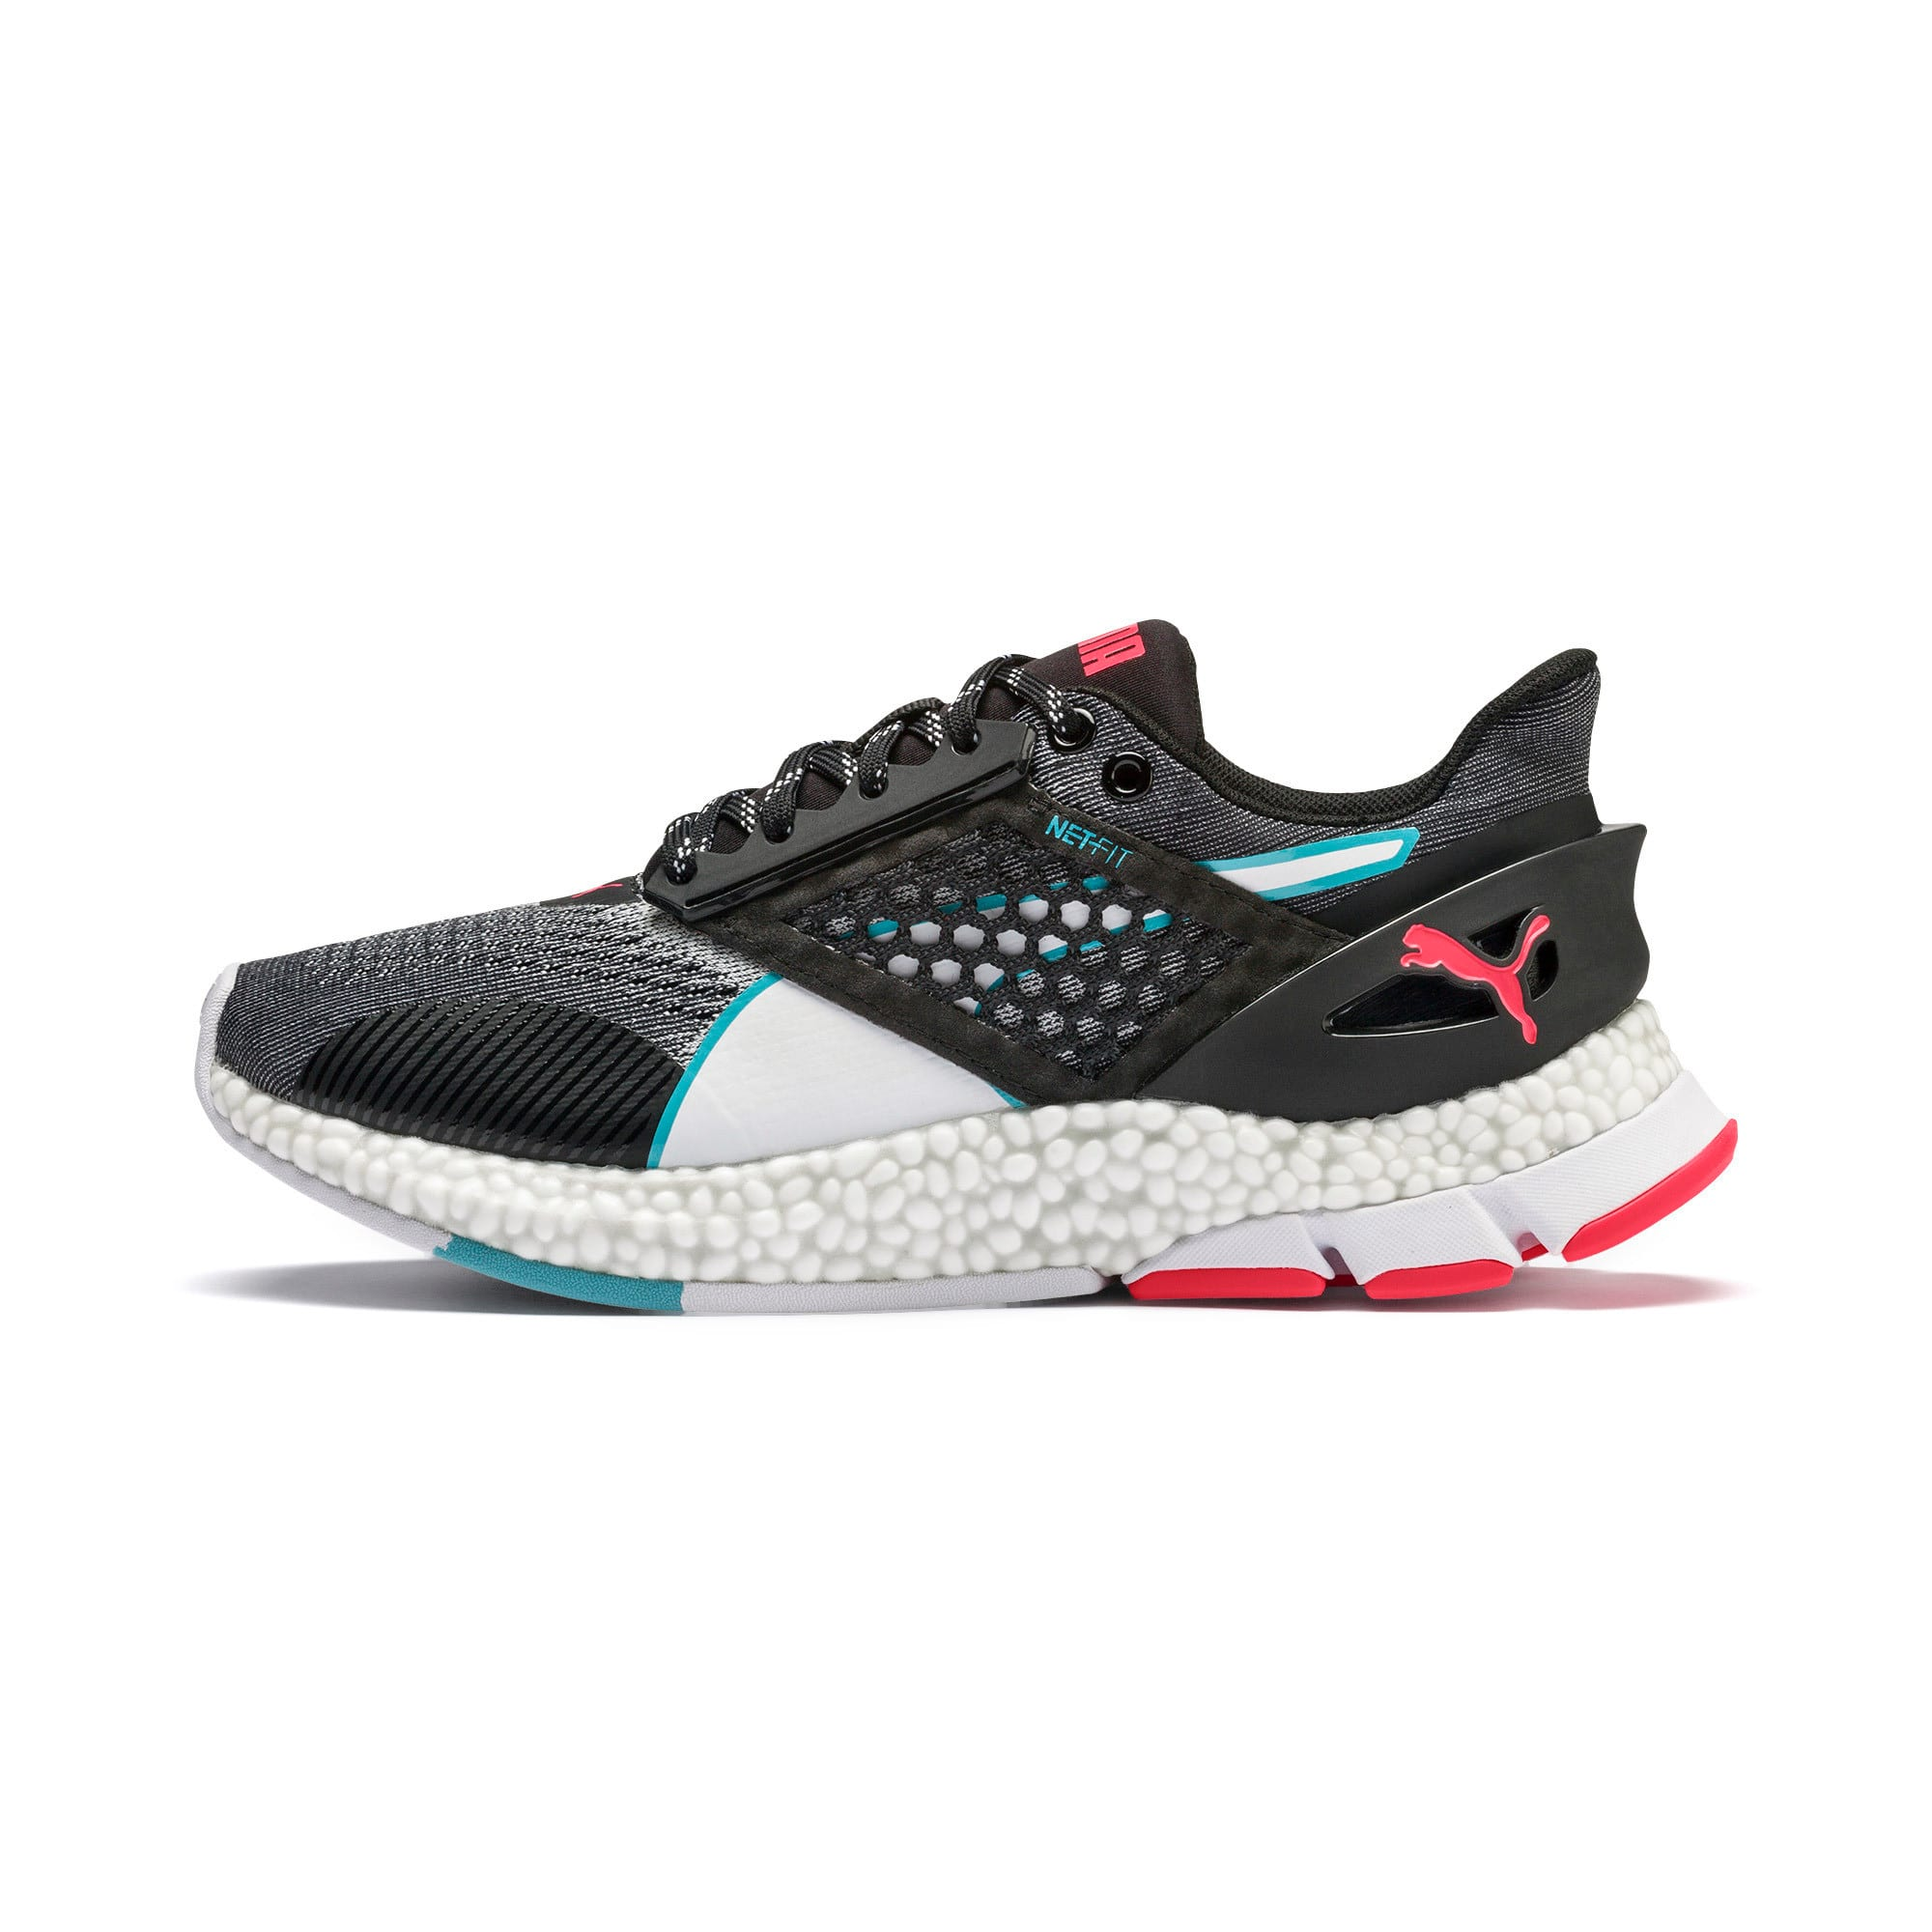 Thumbnail 1 of HYBRID NETFIT Astro Women's Running Shoes, Puma Black-Pink Alert, medium